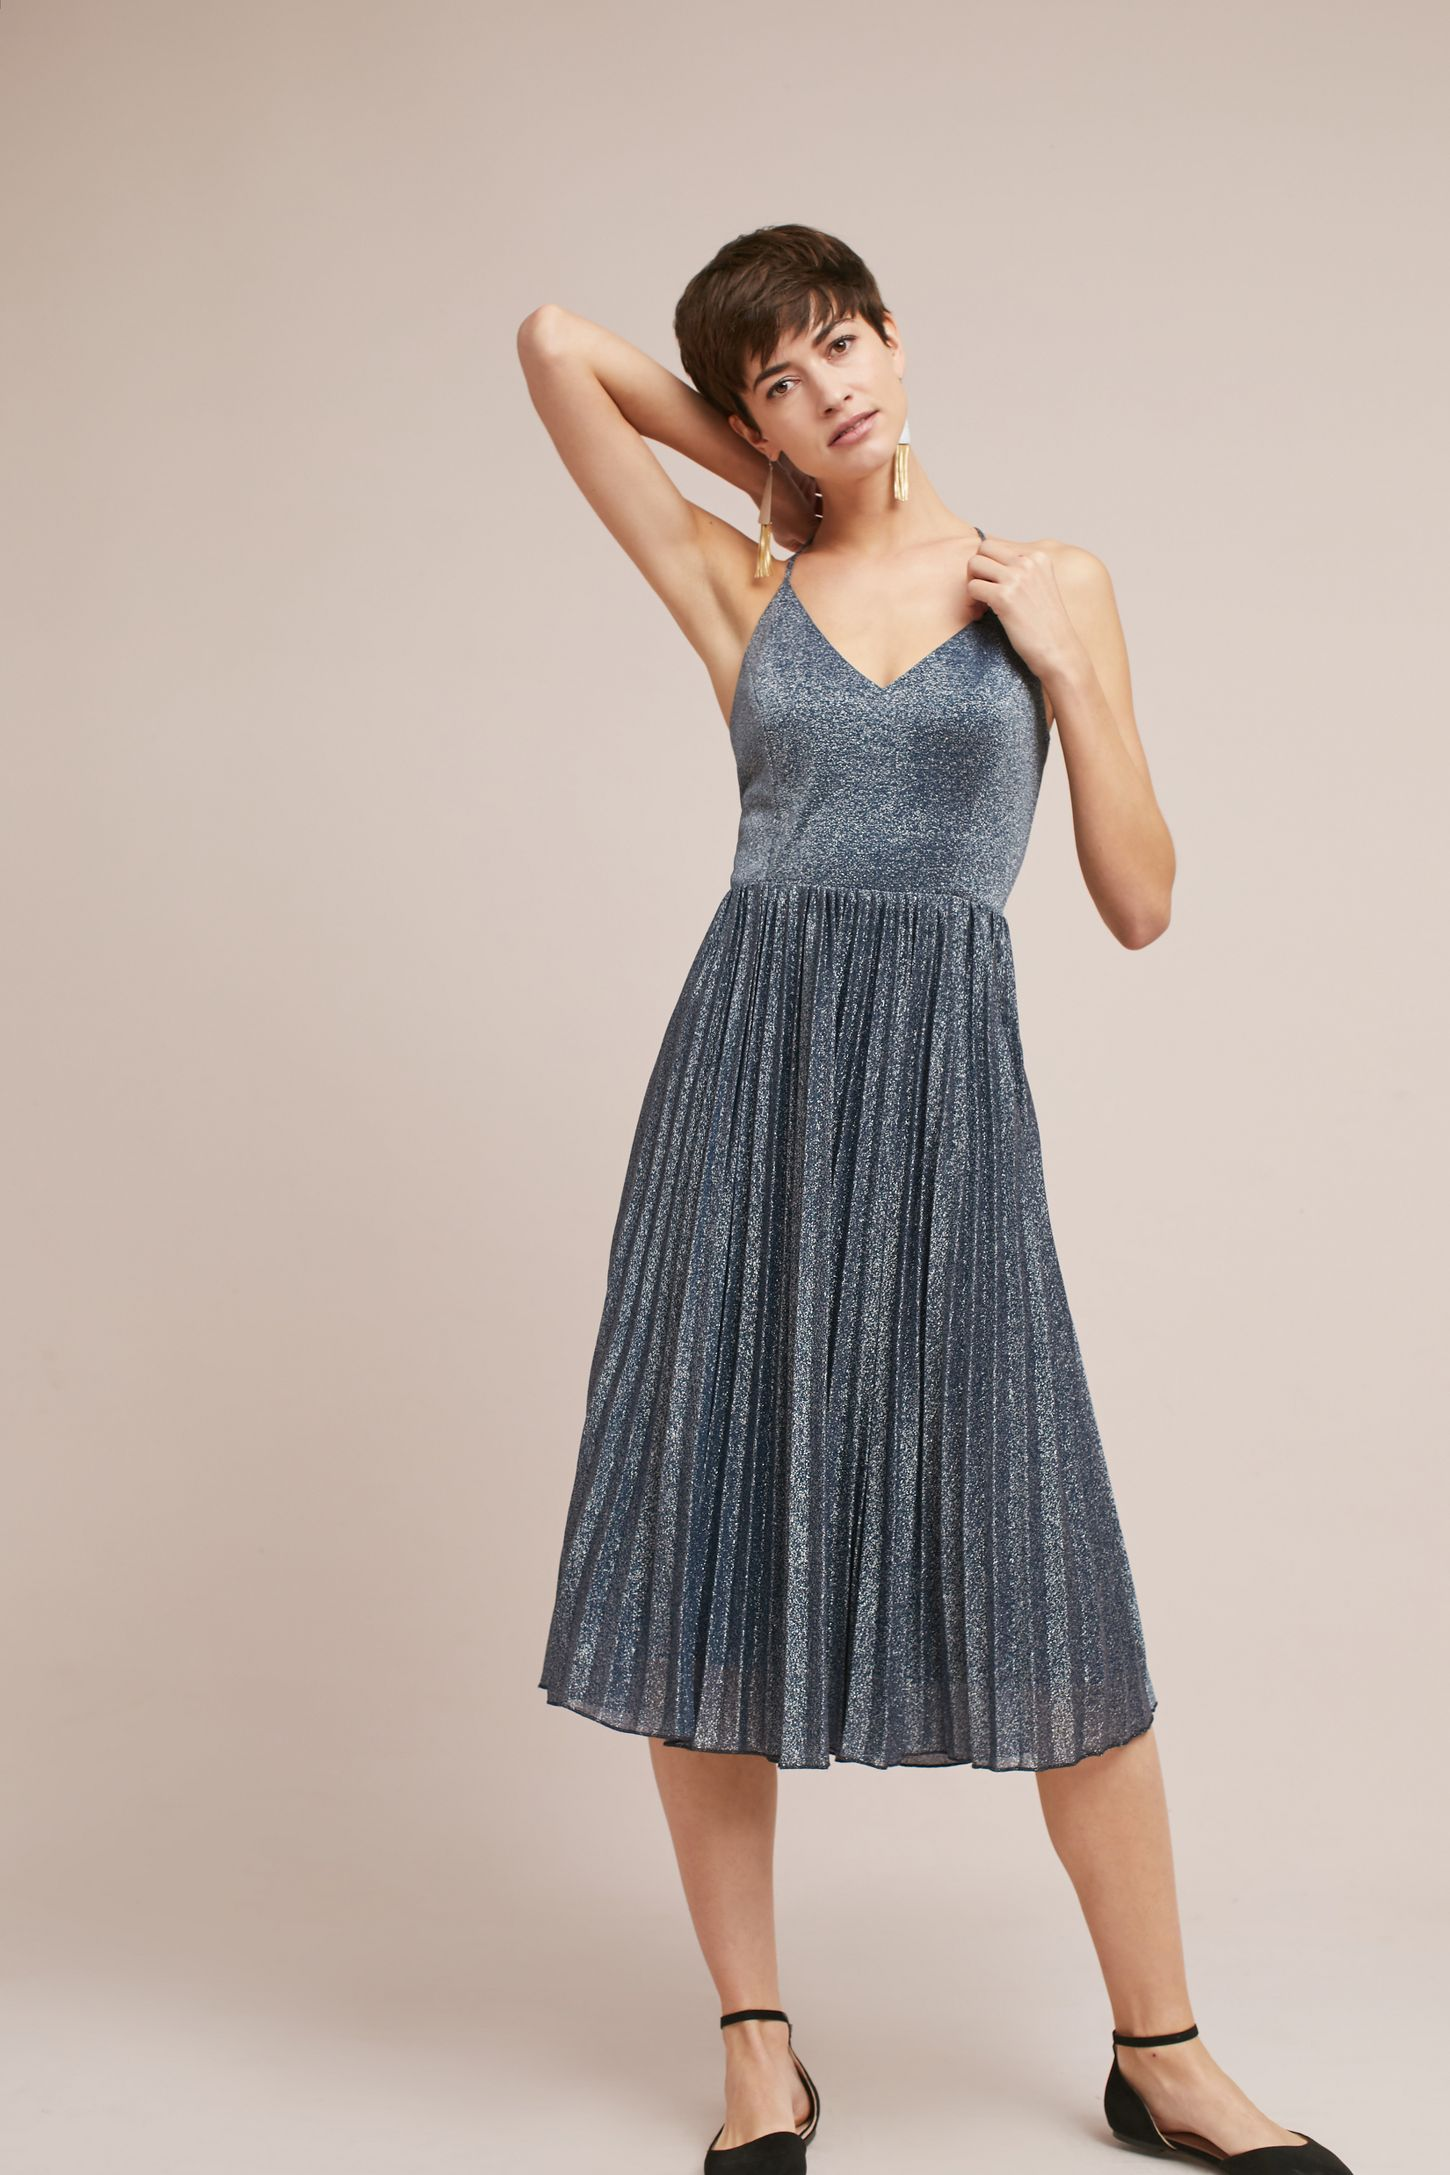 Silver - Dresses For Women | Anthropologie